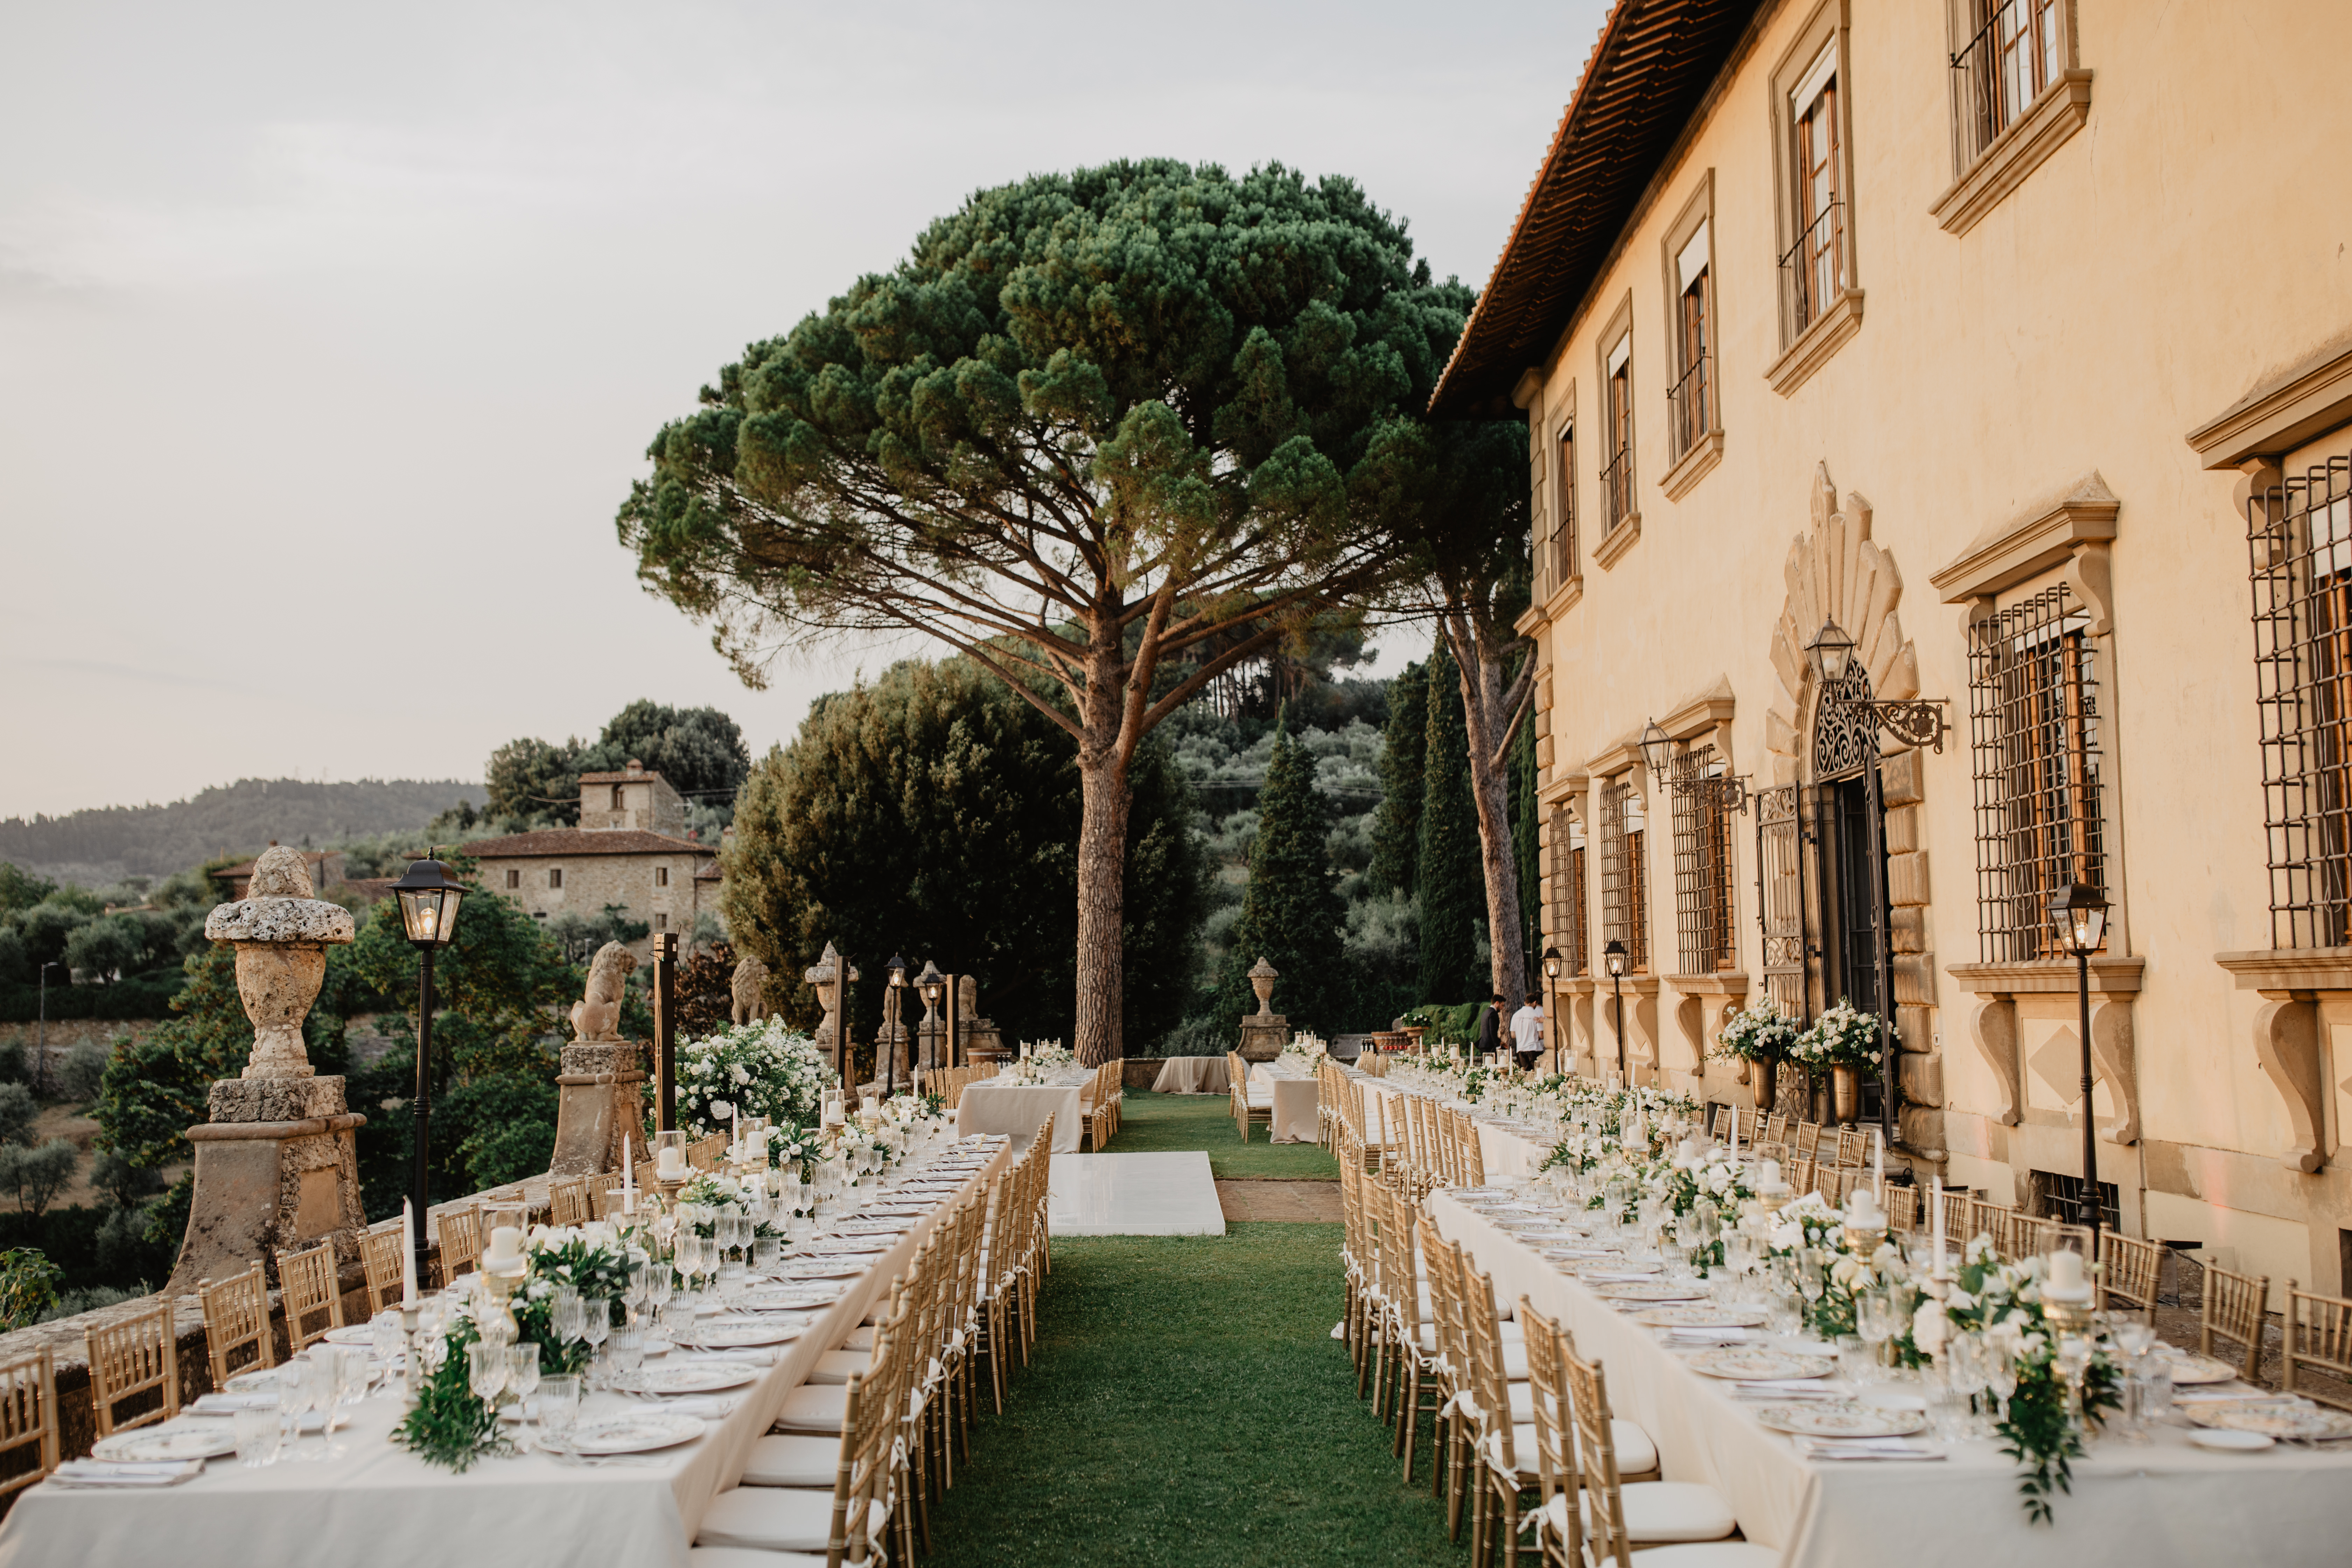 preparation of the terrace for the wedding dinner of a villa in Tuscany